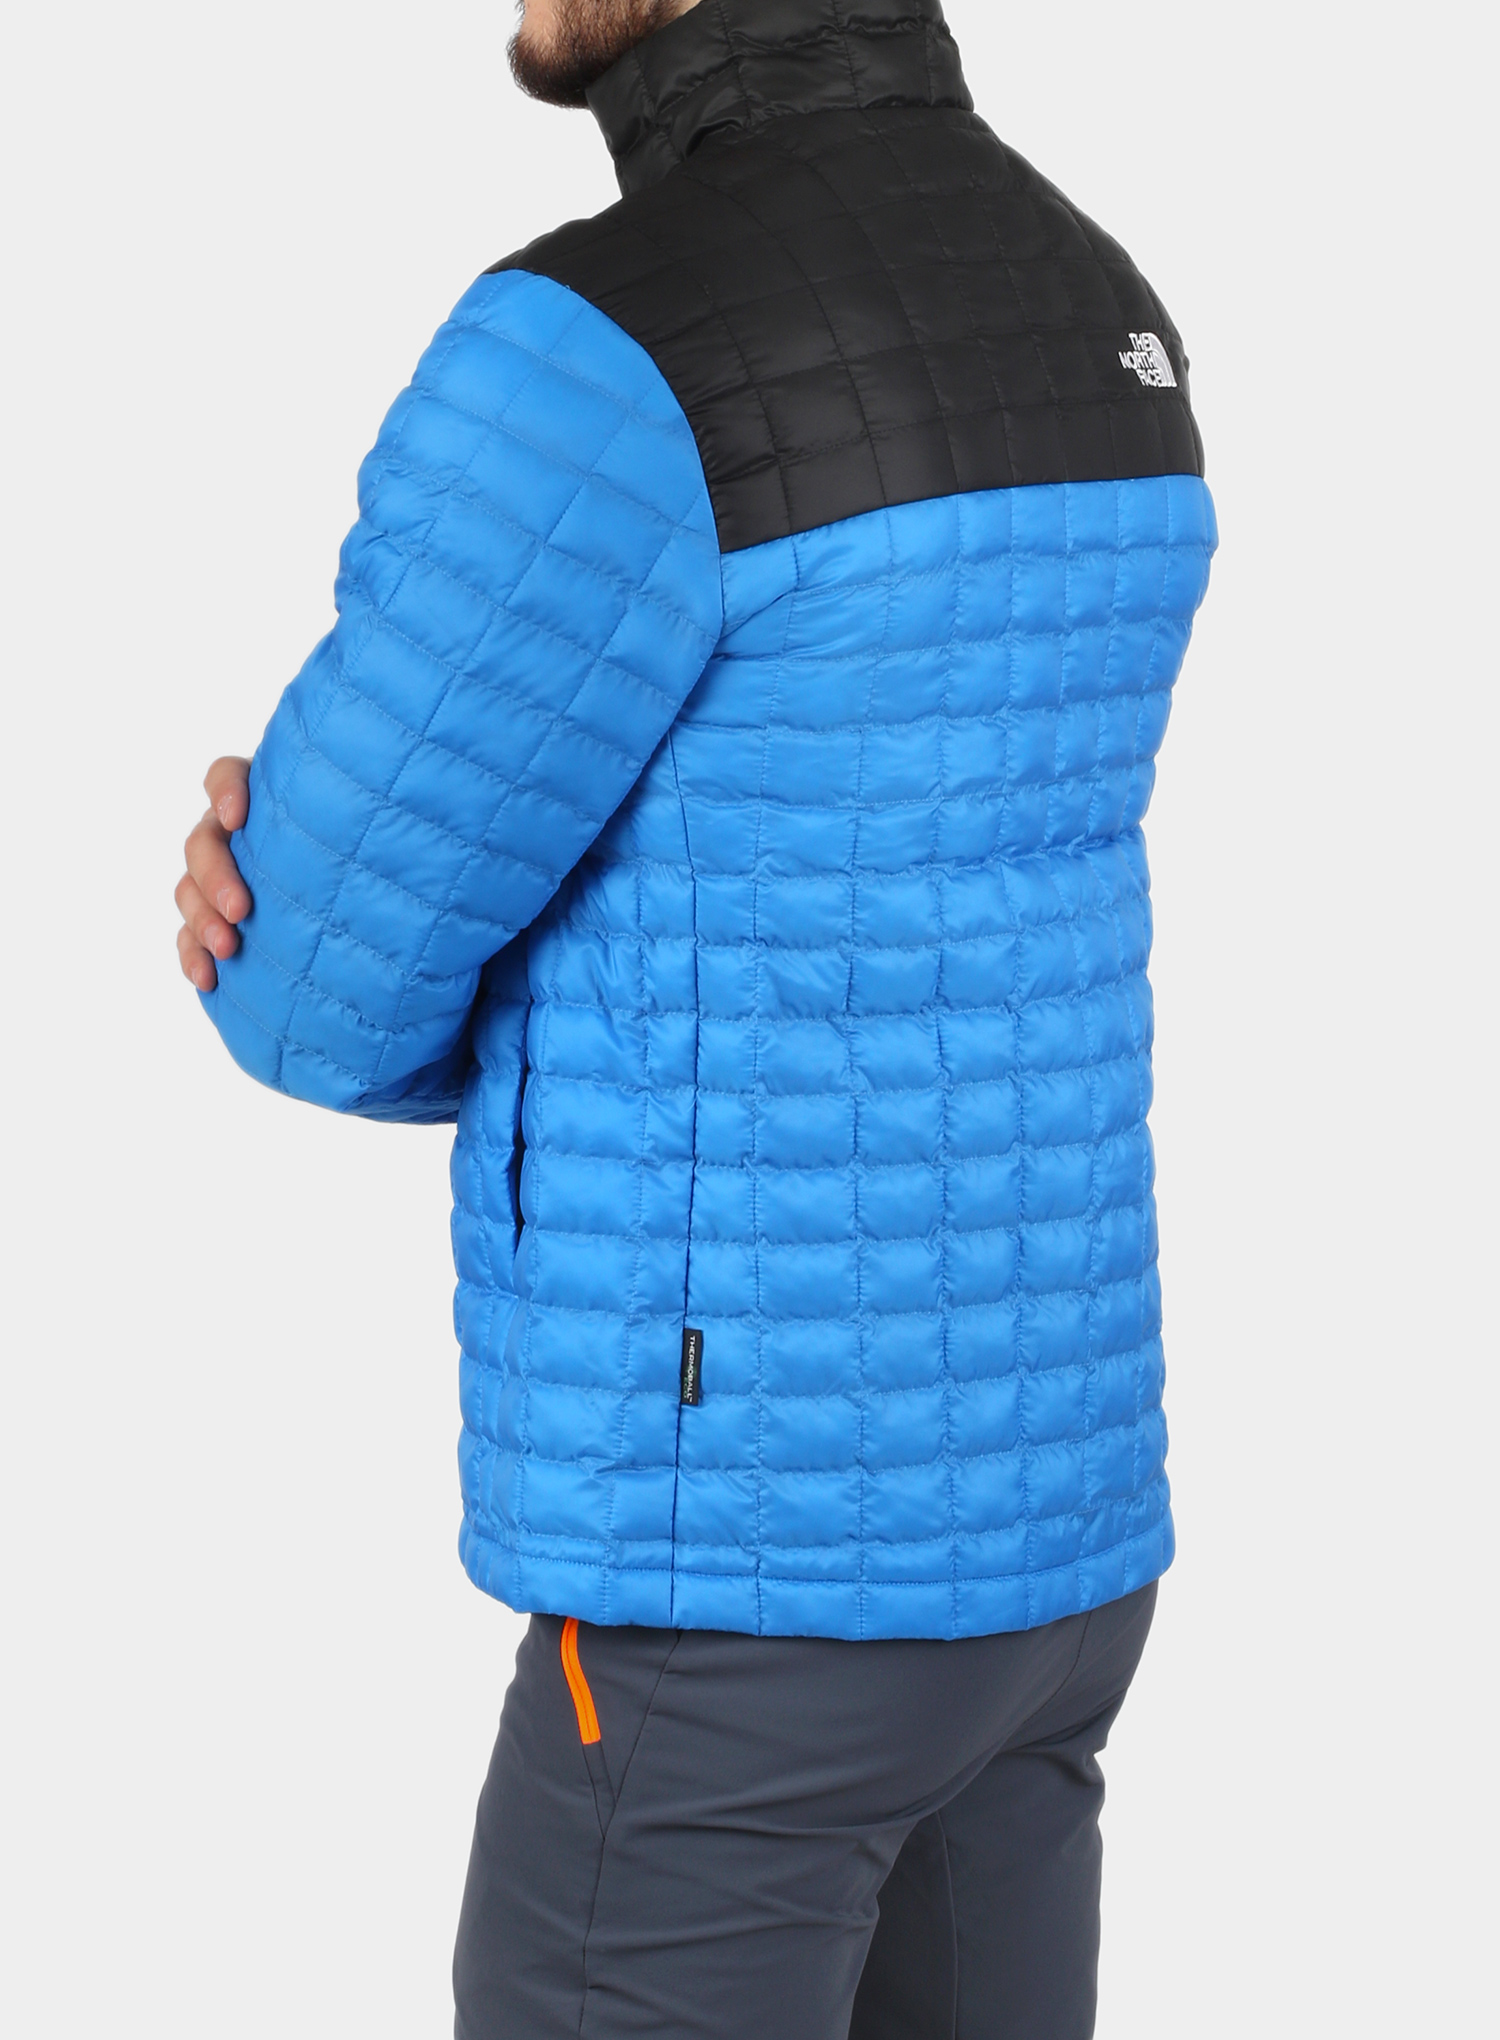 Kurtka The North Face ThermoBall Eco Active Jacket - l.blue/blk - zdjęcie nr. 2